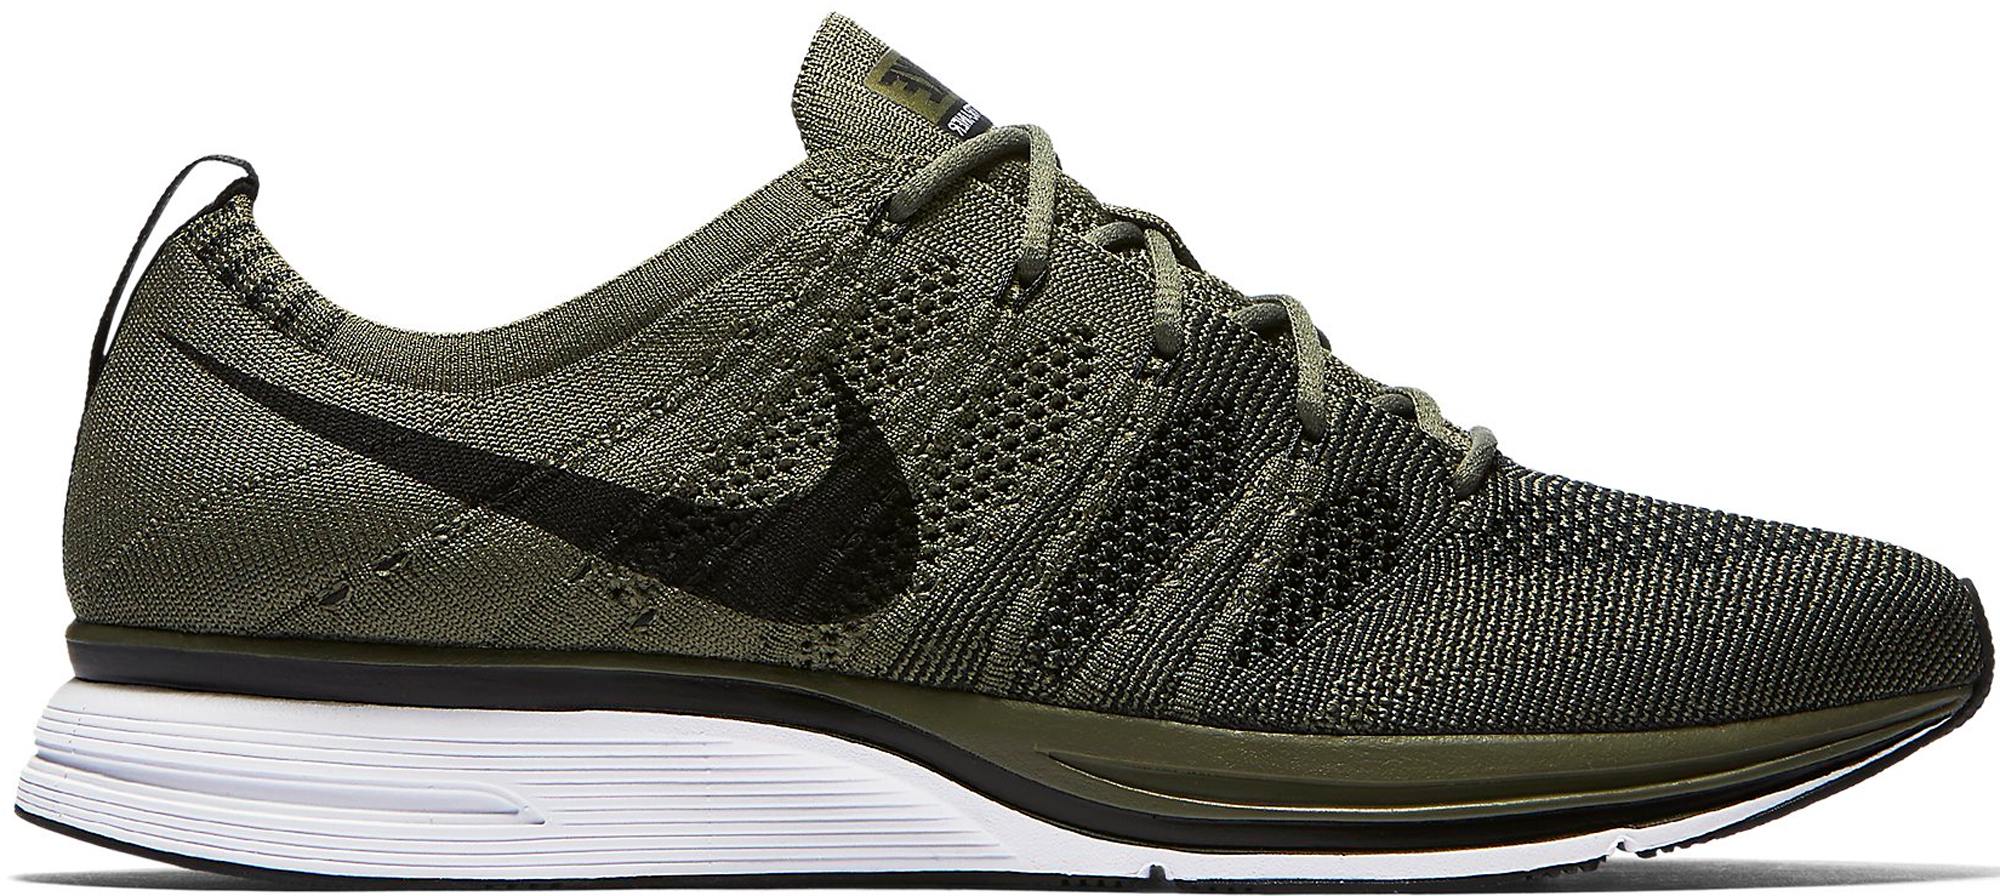 Nike Flyknit Trainer Olive - StockX News